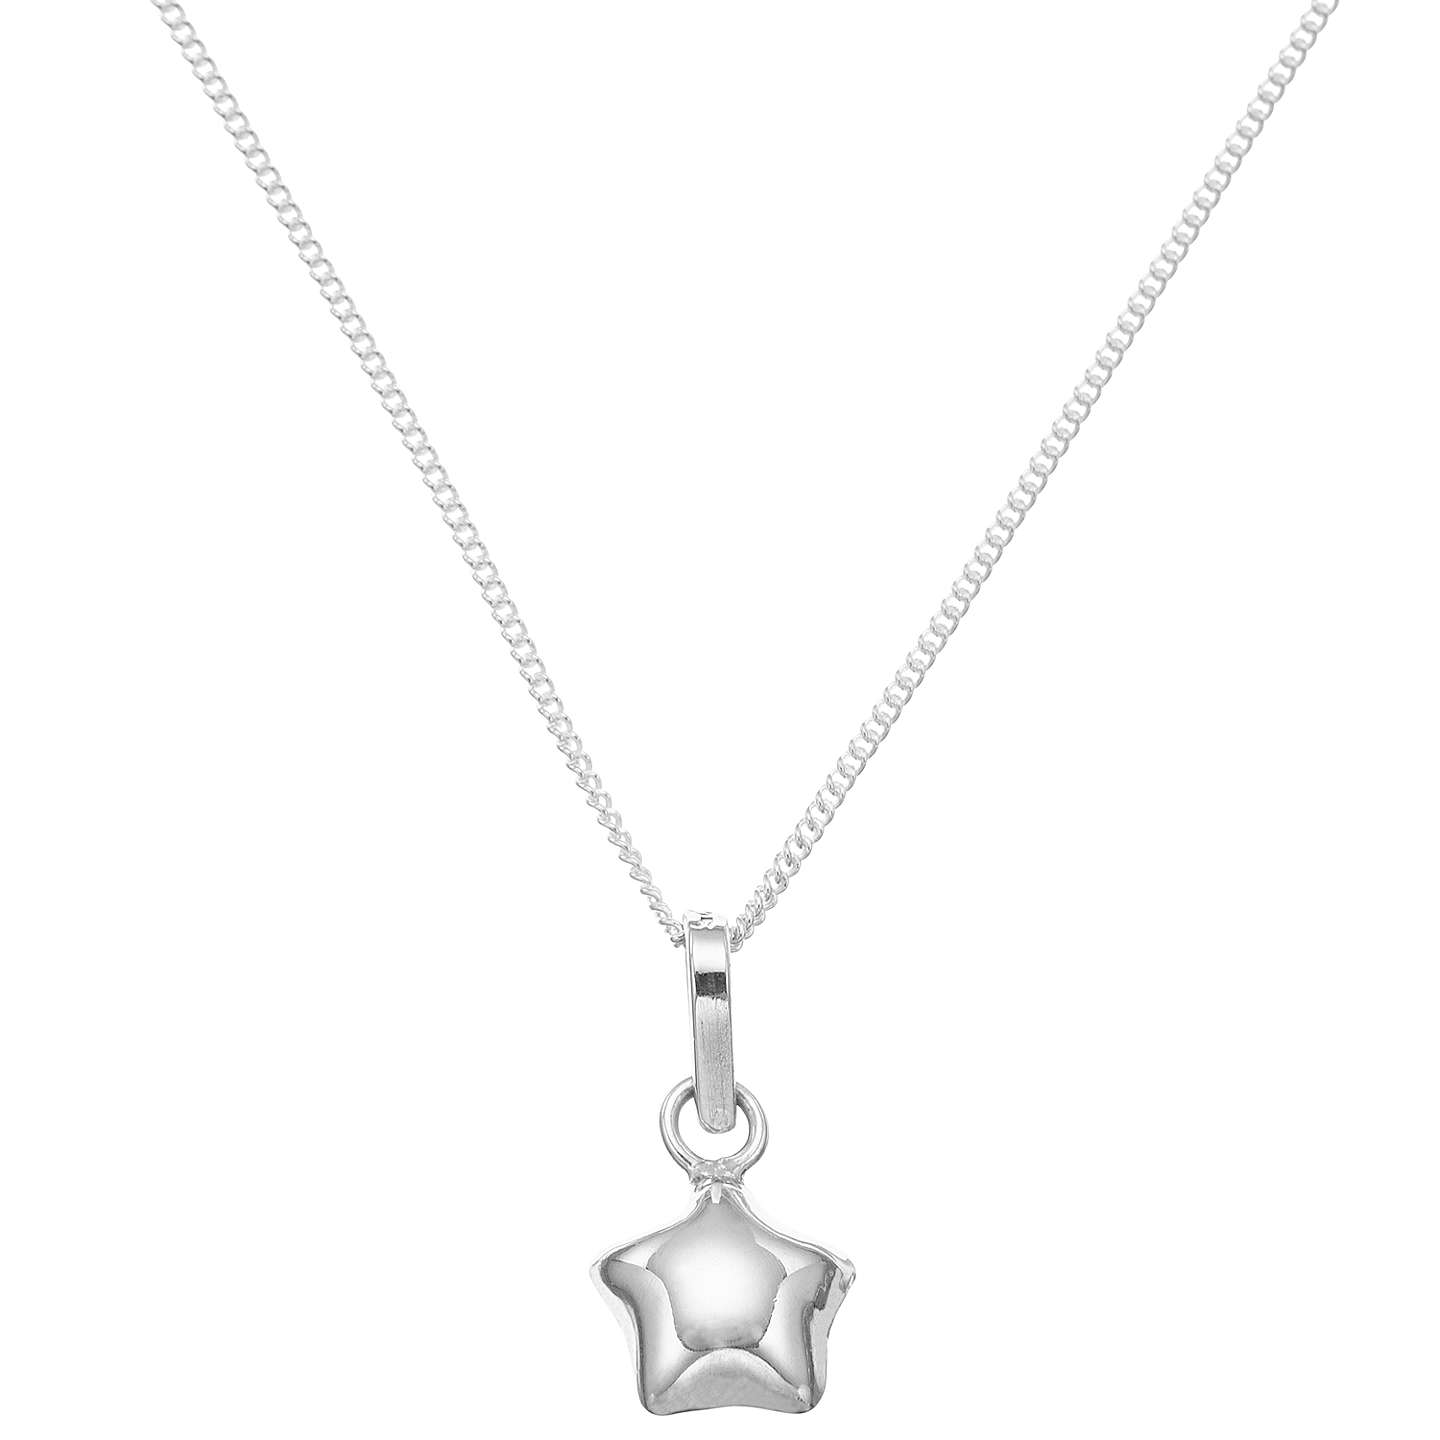 BuyJohn Lewis Sterling Silver Lucky Star Necklace Online at johnlewis.com